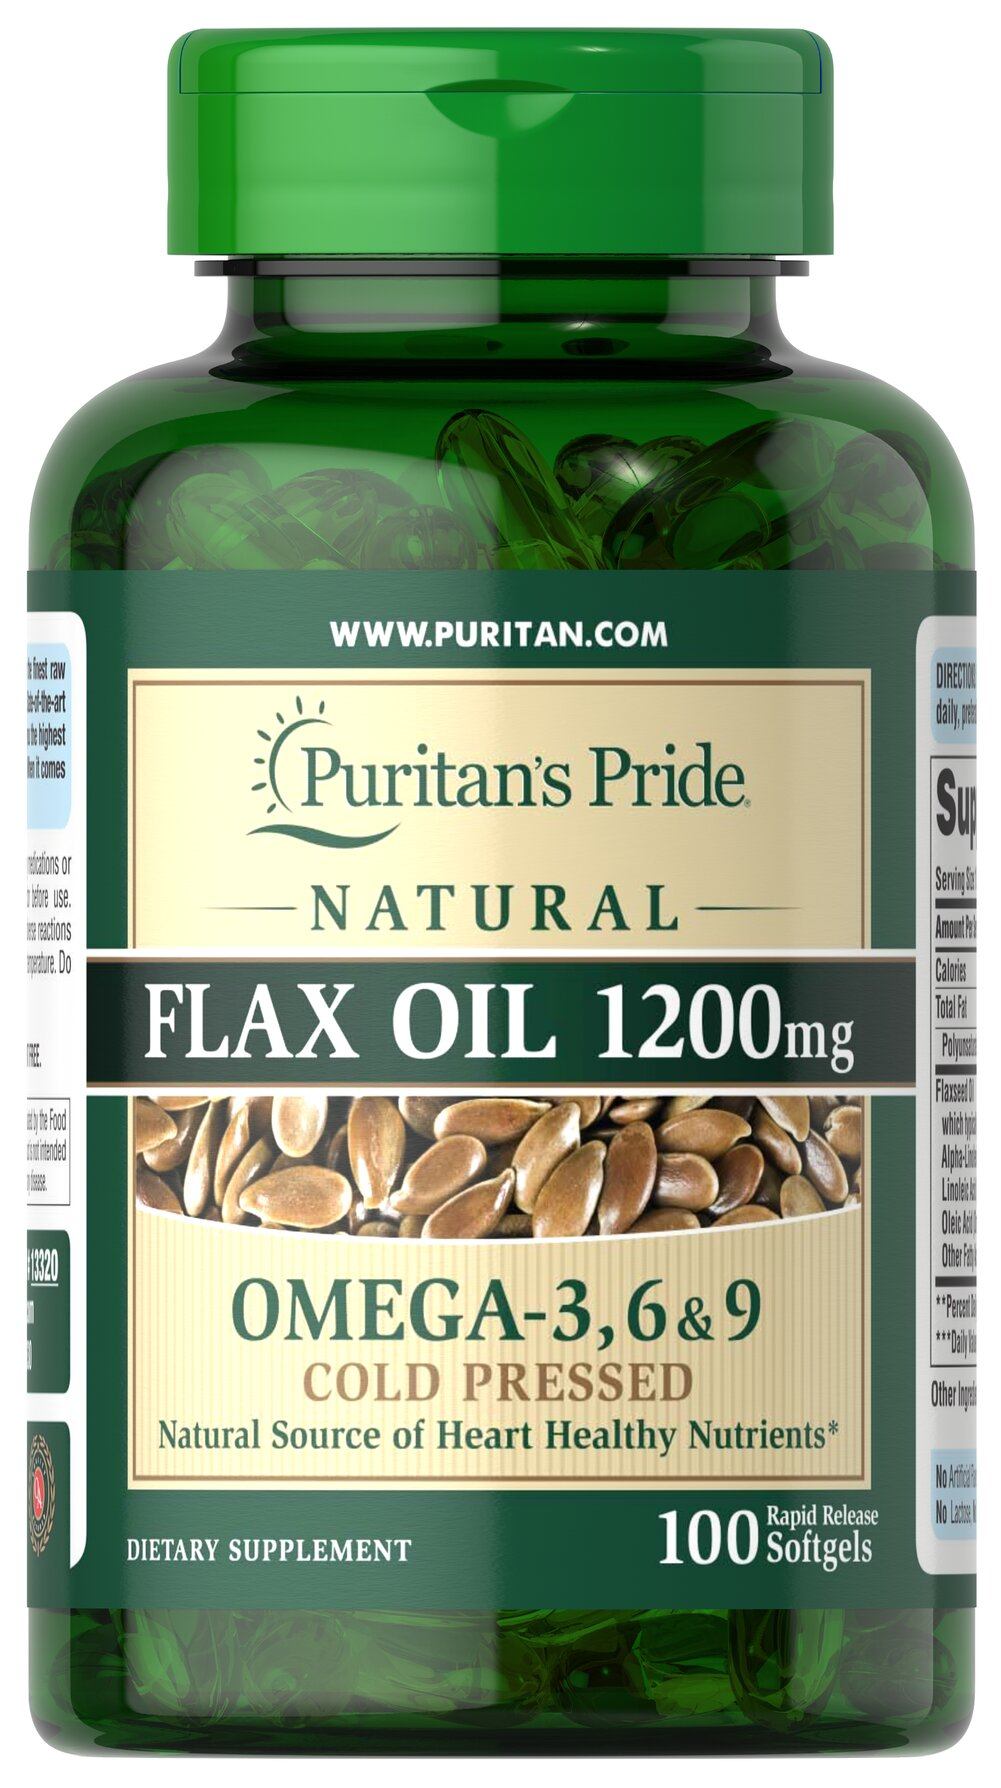 Natural Flax Oil 1200 mg <p>Flaxseed — one of the most concentrated vegetarian source of <b>Omega-3 fatty acids</b> found in nature — contributes to heart and while providing an energy source for the body.** Our high-quality natural <b>Flaxseed Oil</b> is dispensed and processed without solvents, under a nitrogen blanket and special yellow lights, then encased in a protective amber-colored gelatin shell to retain its integrity.</p> 100 Softgels 1200 mg $11.99